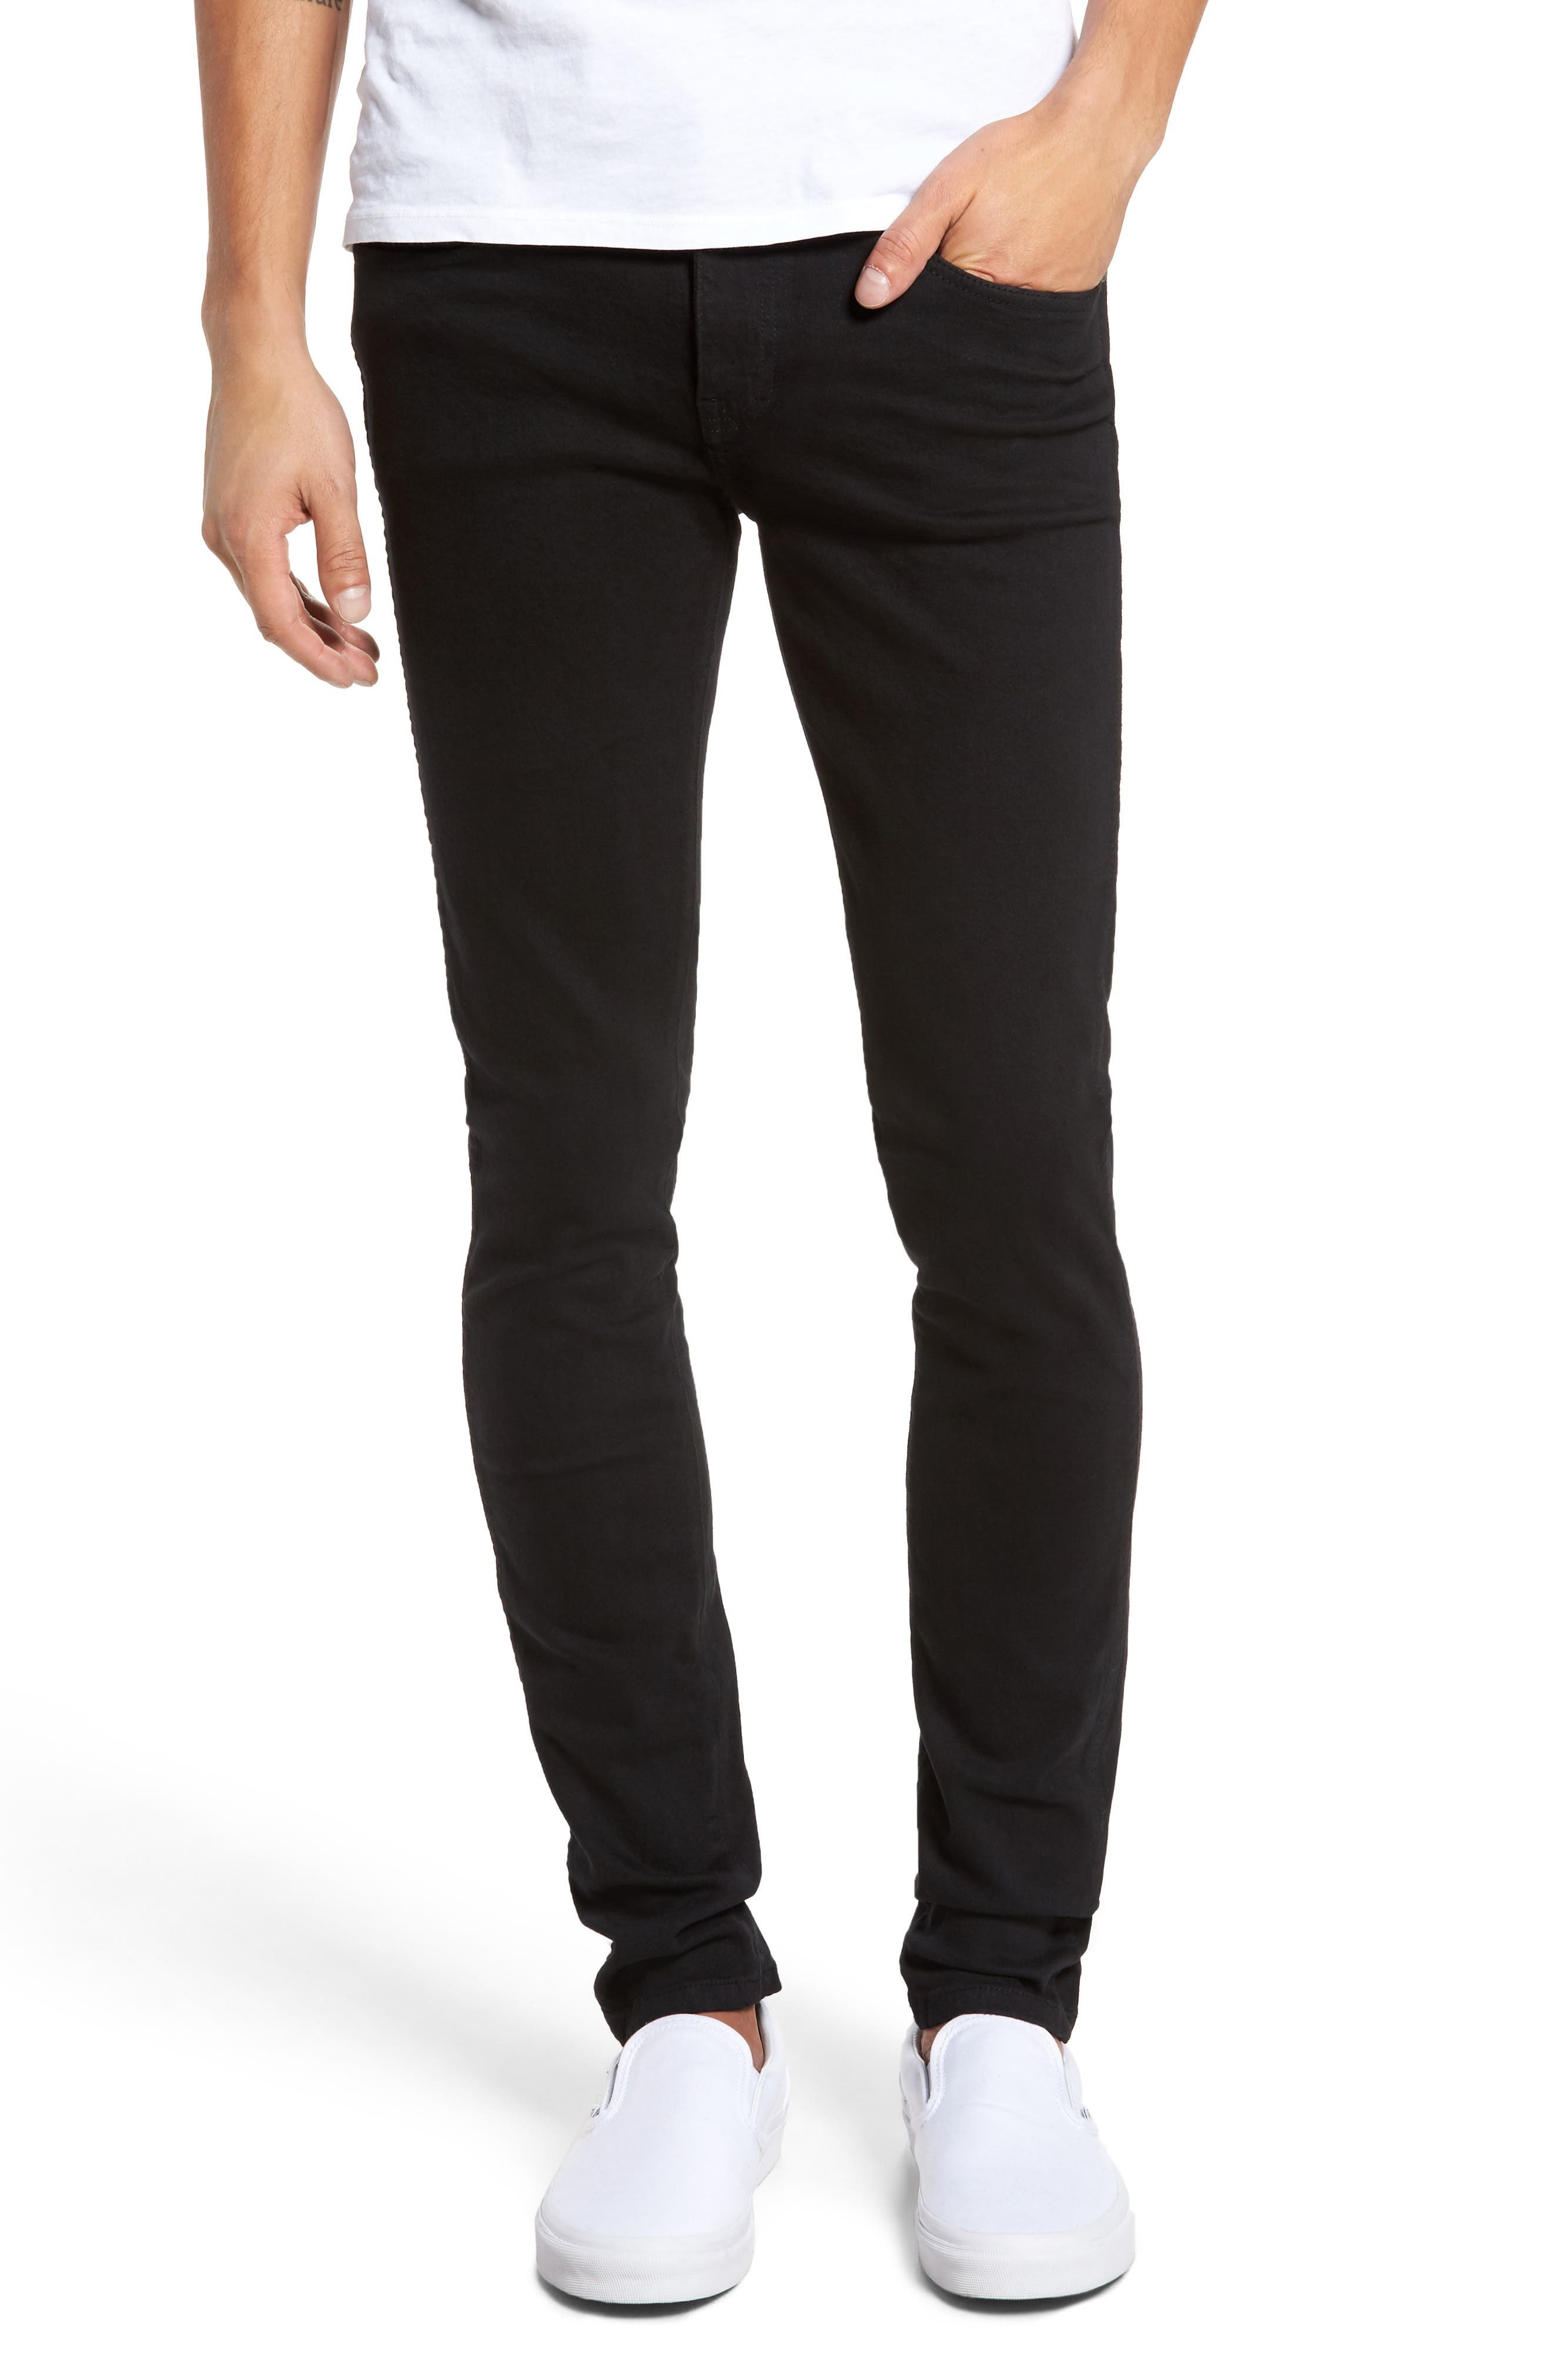 Snap Skinny Fit Jeans,                             Main thumbnail 1, color,                             BLACK